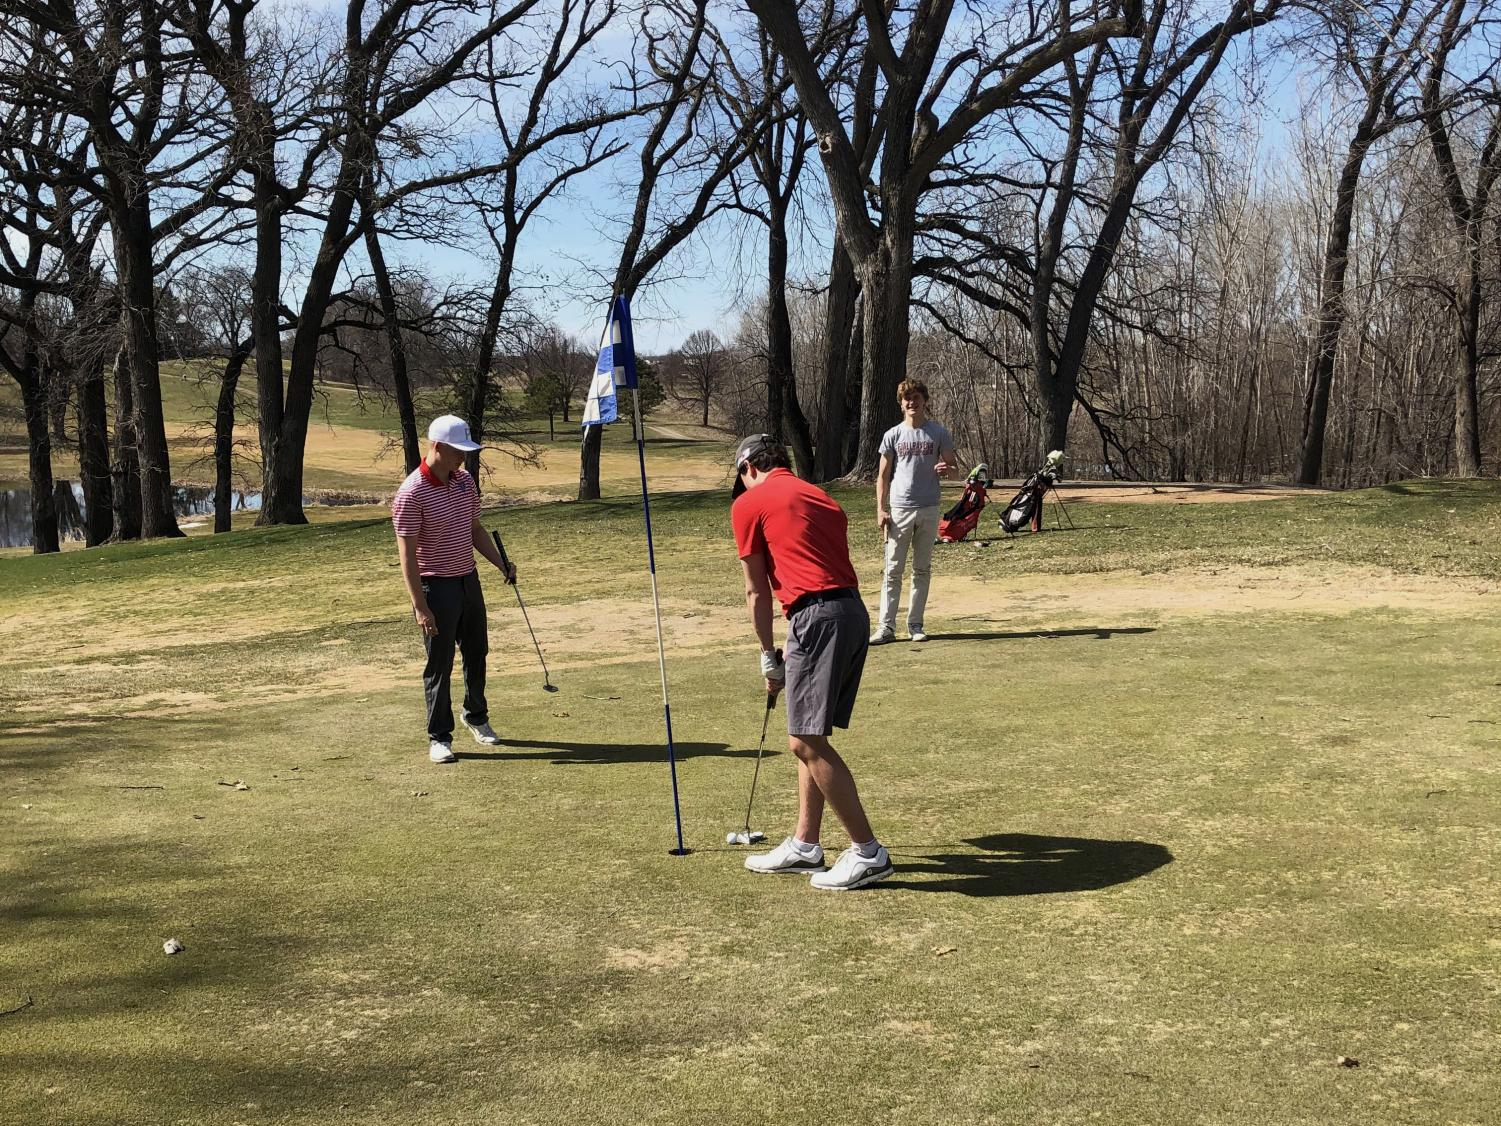 BSM boys' golf practices their putting during early spring practices.